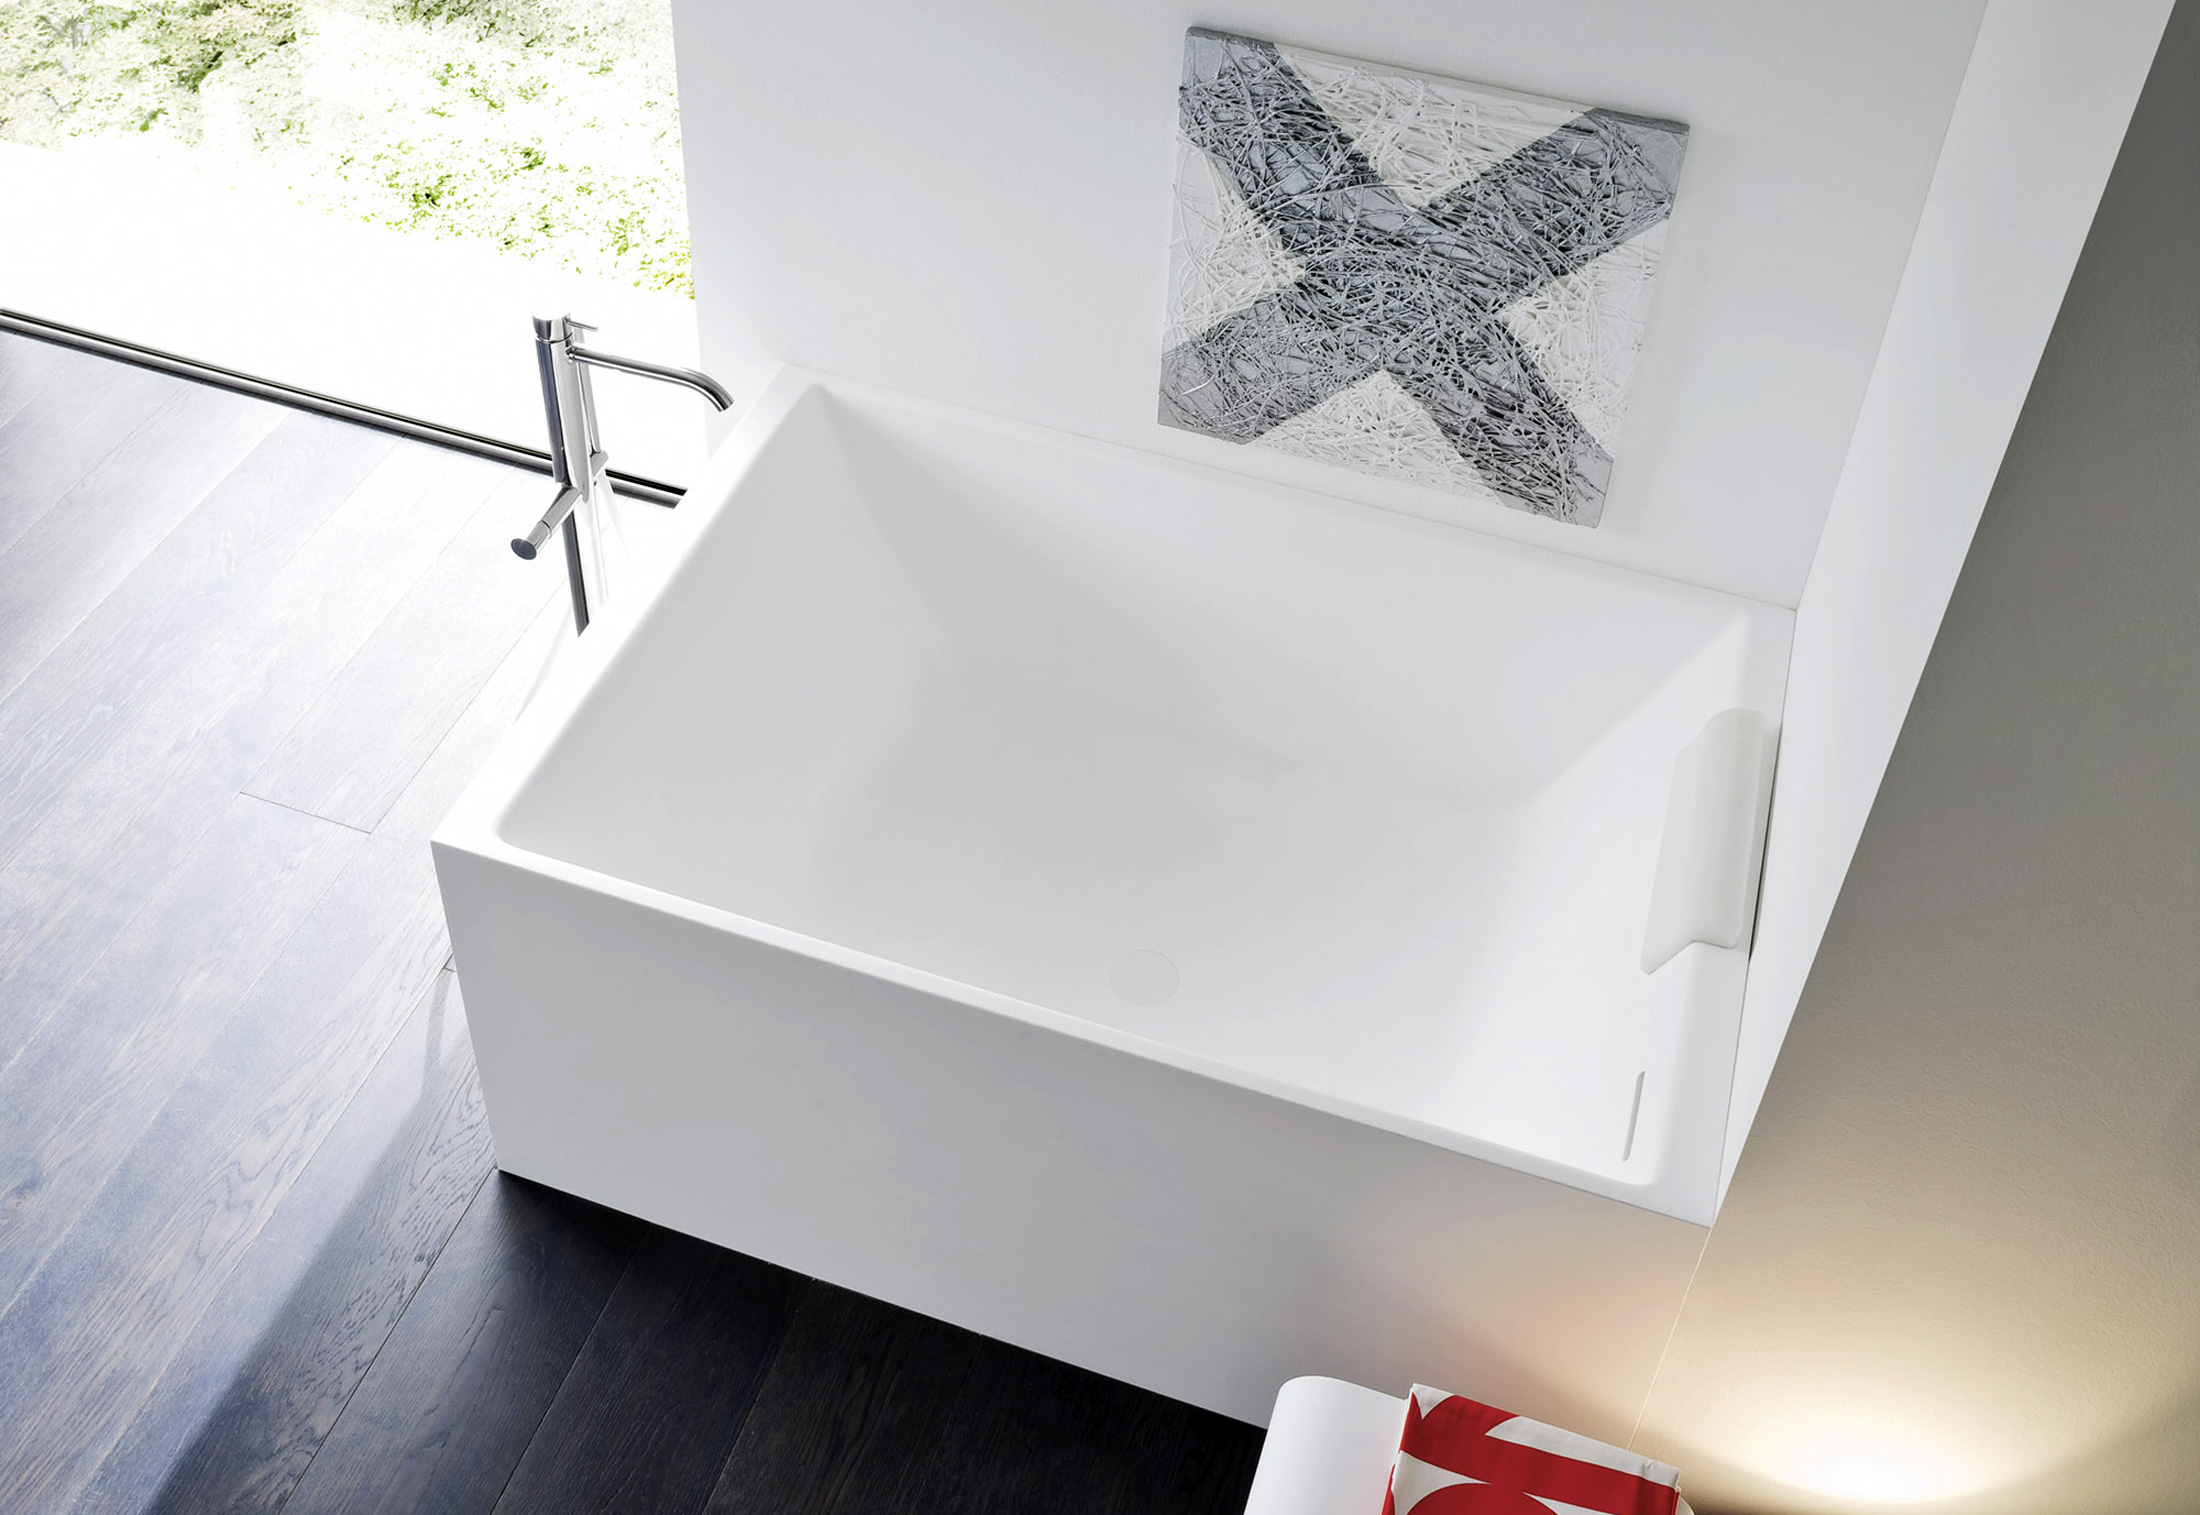 Unico bathtub mini by rexa design stylepark for Mini badewanne